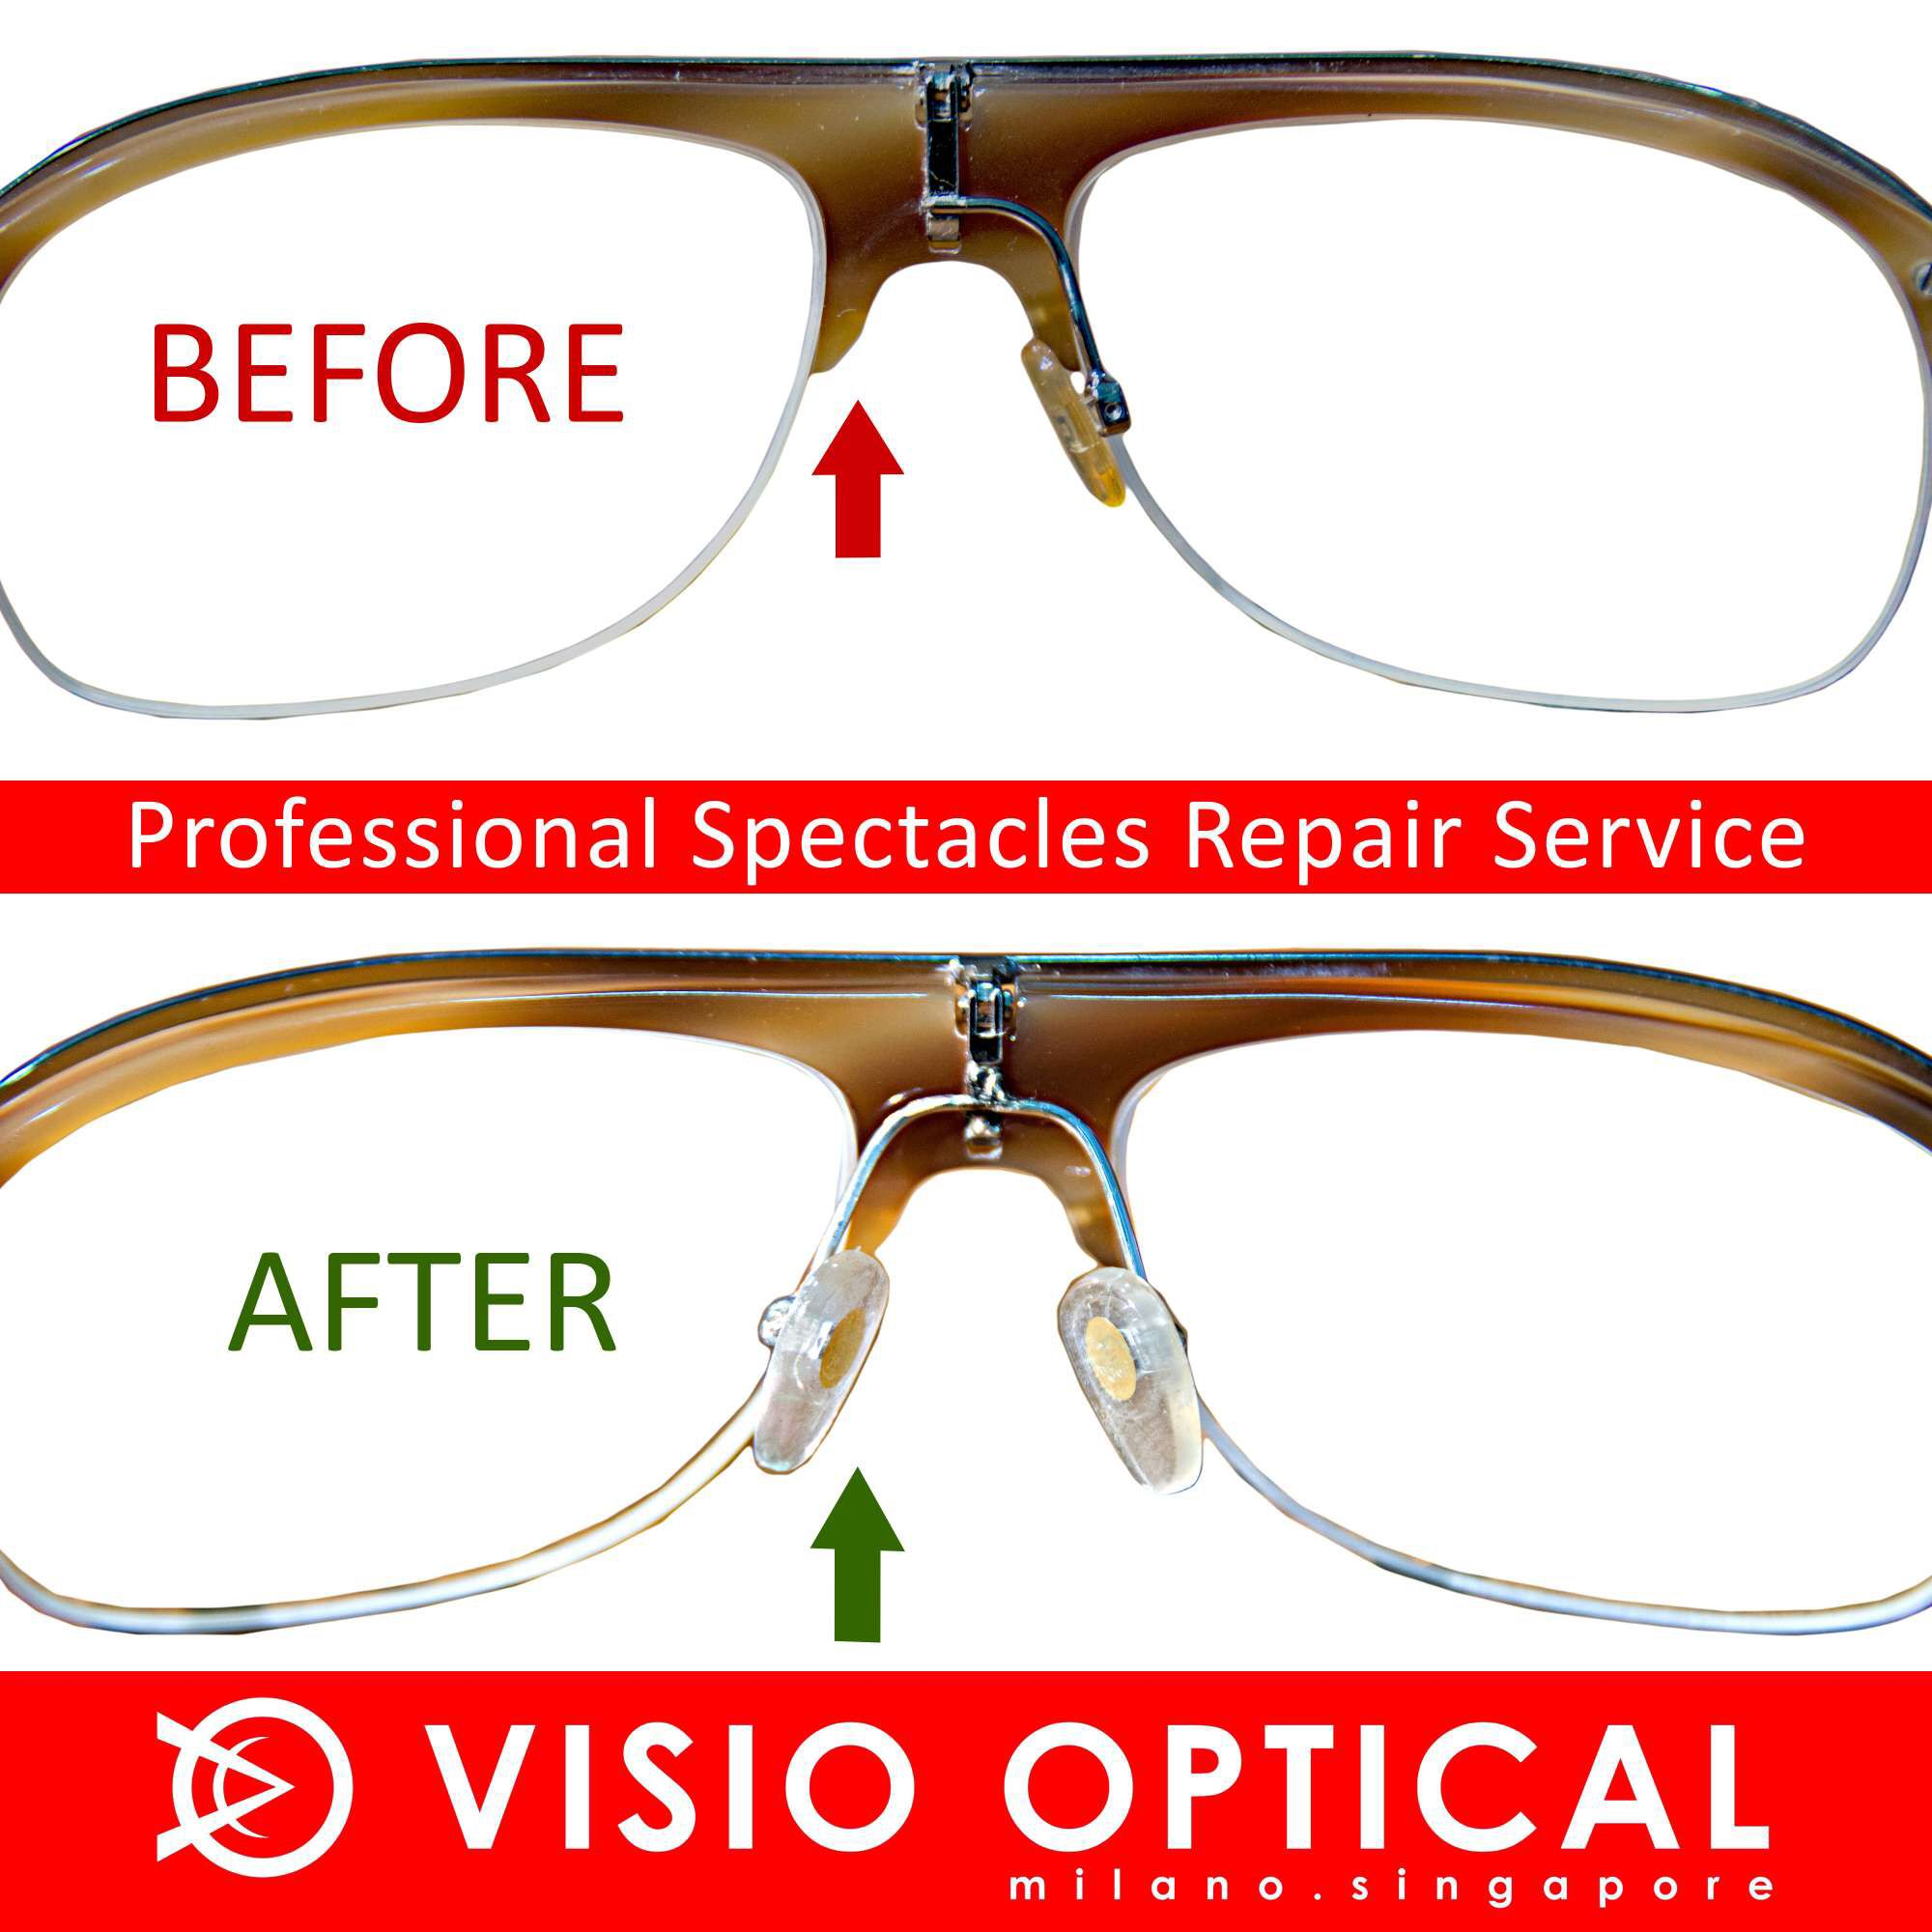 5256f3fa0be0 Visio Optical. Full service optical shop in Singapore near Holland Village.  Thousands of frames from designer to simple chic. Direct import from Italy.